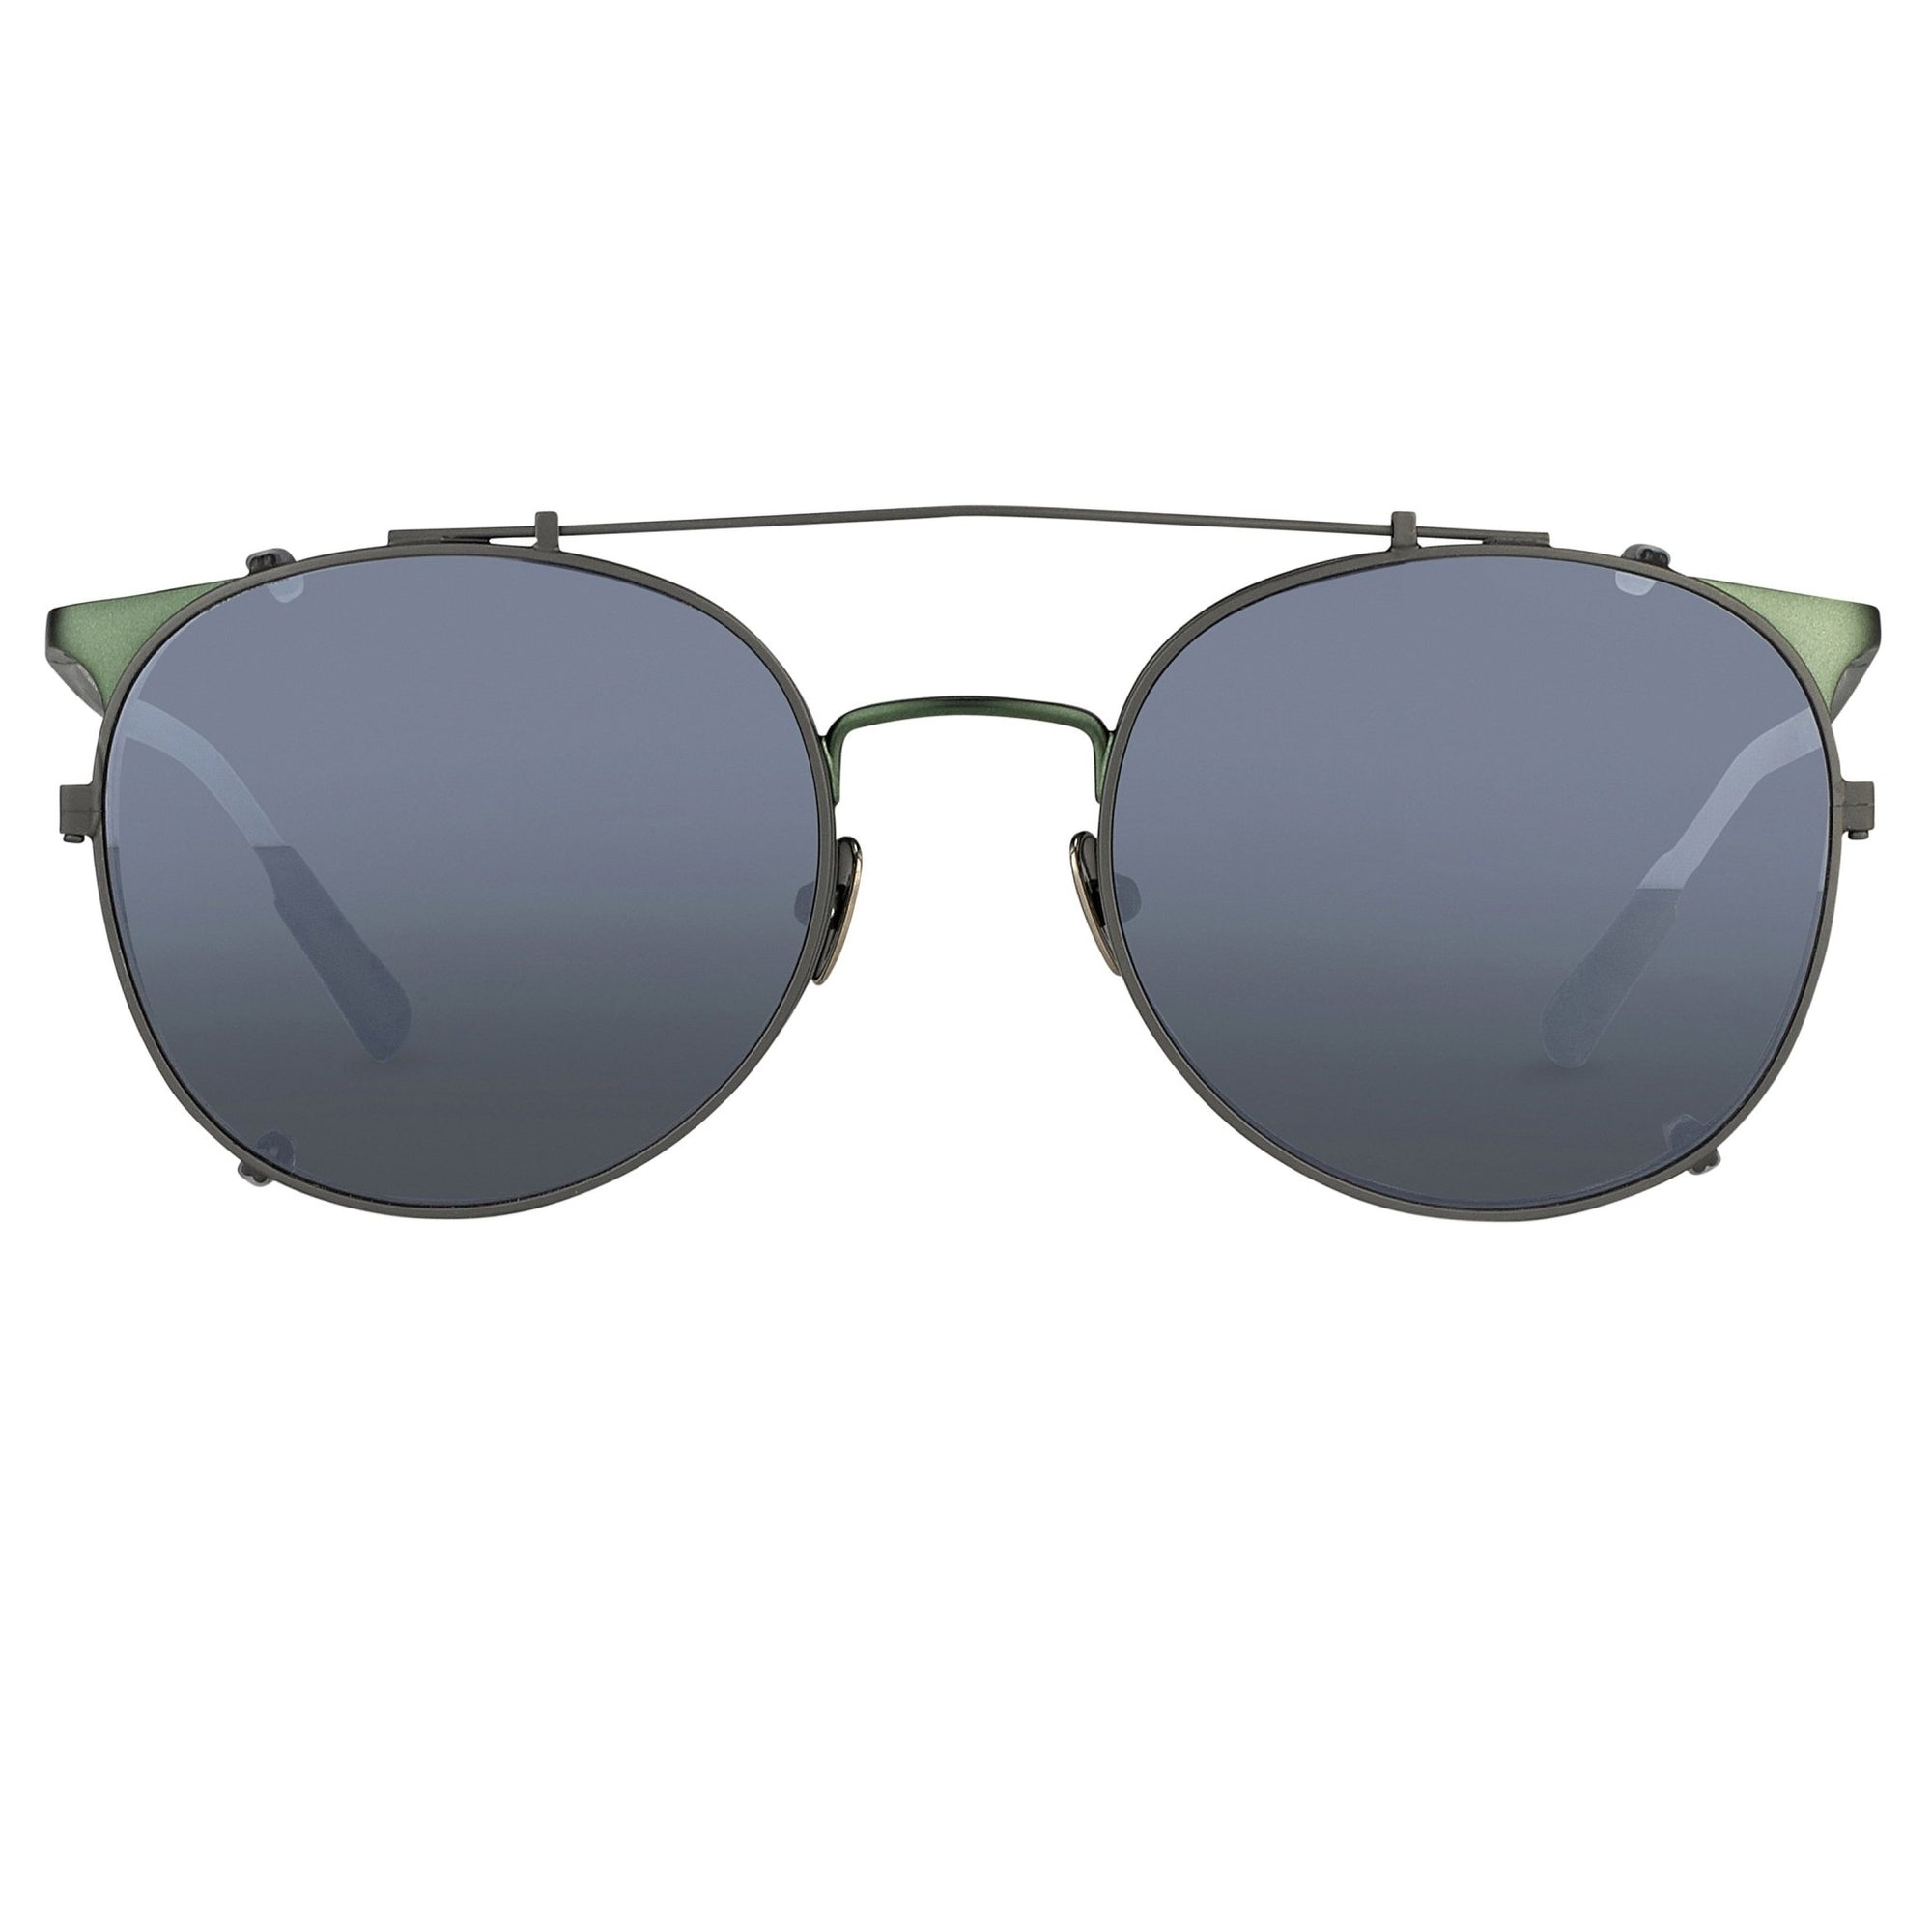 Kris Van Assche Sunglasses Unisex Oval Green and Flash Mirror Clip-On Lenses Category 3 - KVA69C6SUN - Watches & Crystals